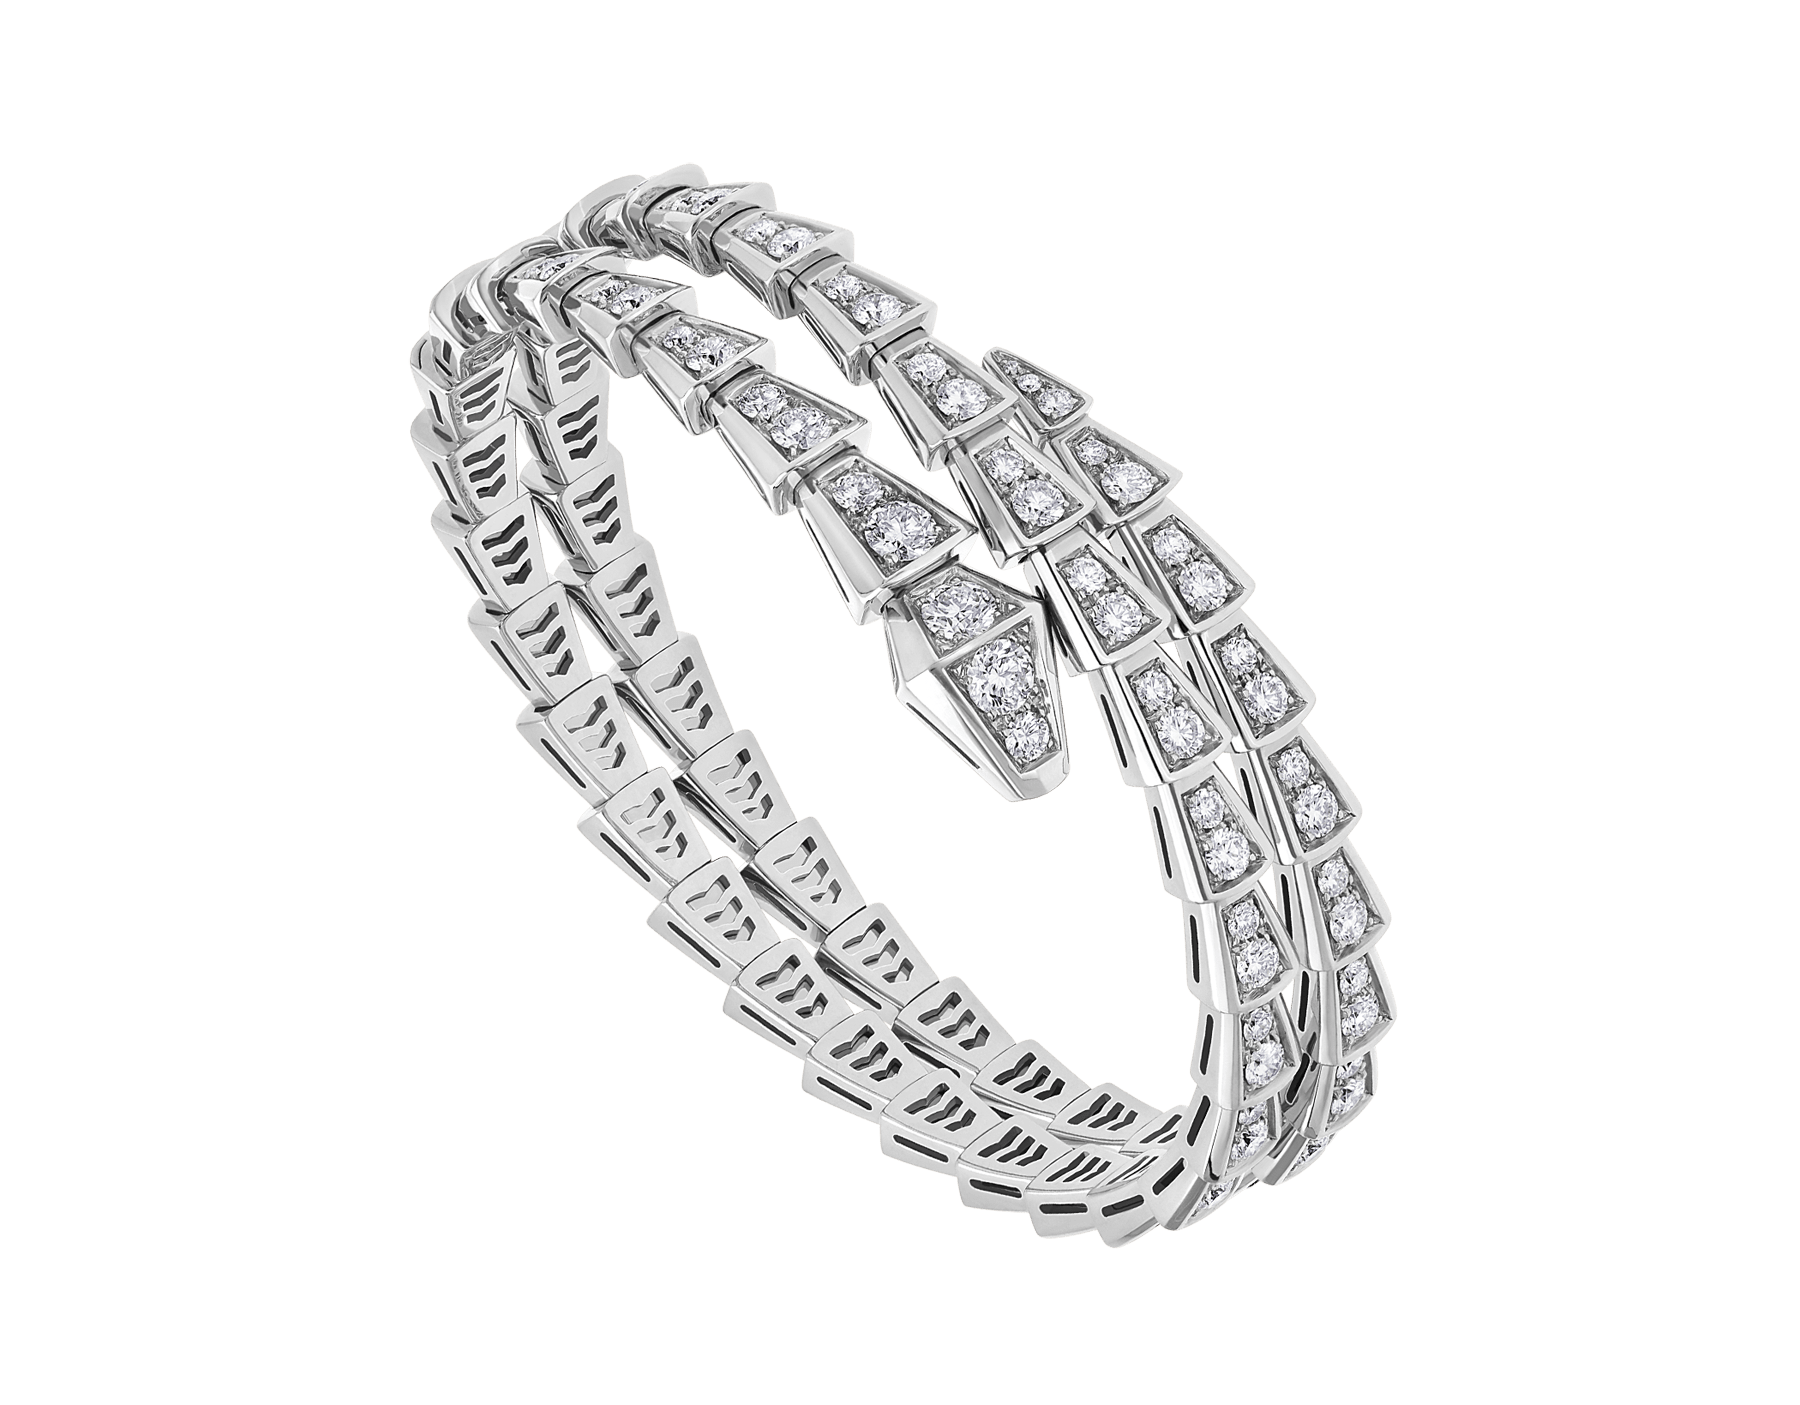 Serpenti Viper two-coil 18 kt white gold bracelet set with pavé diamonds BR858795 image 1